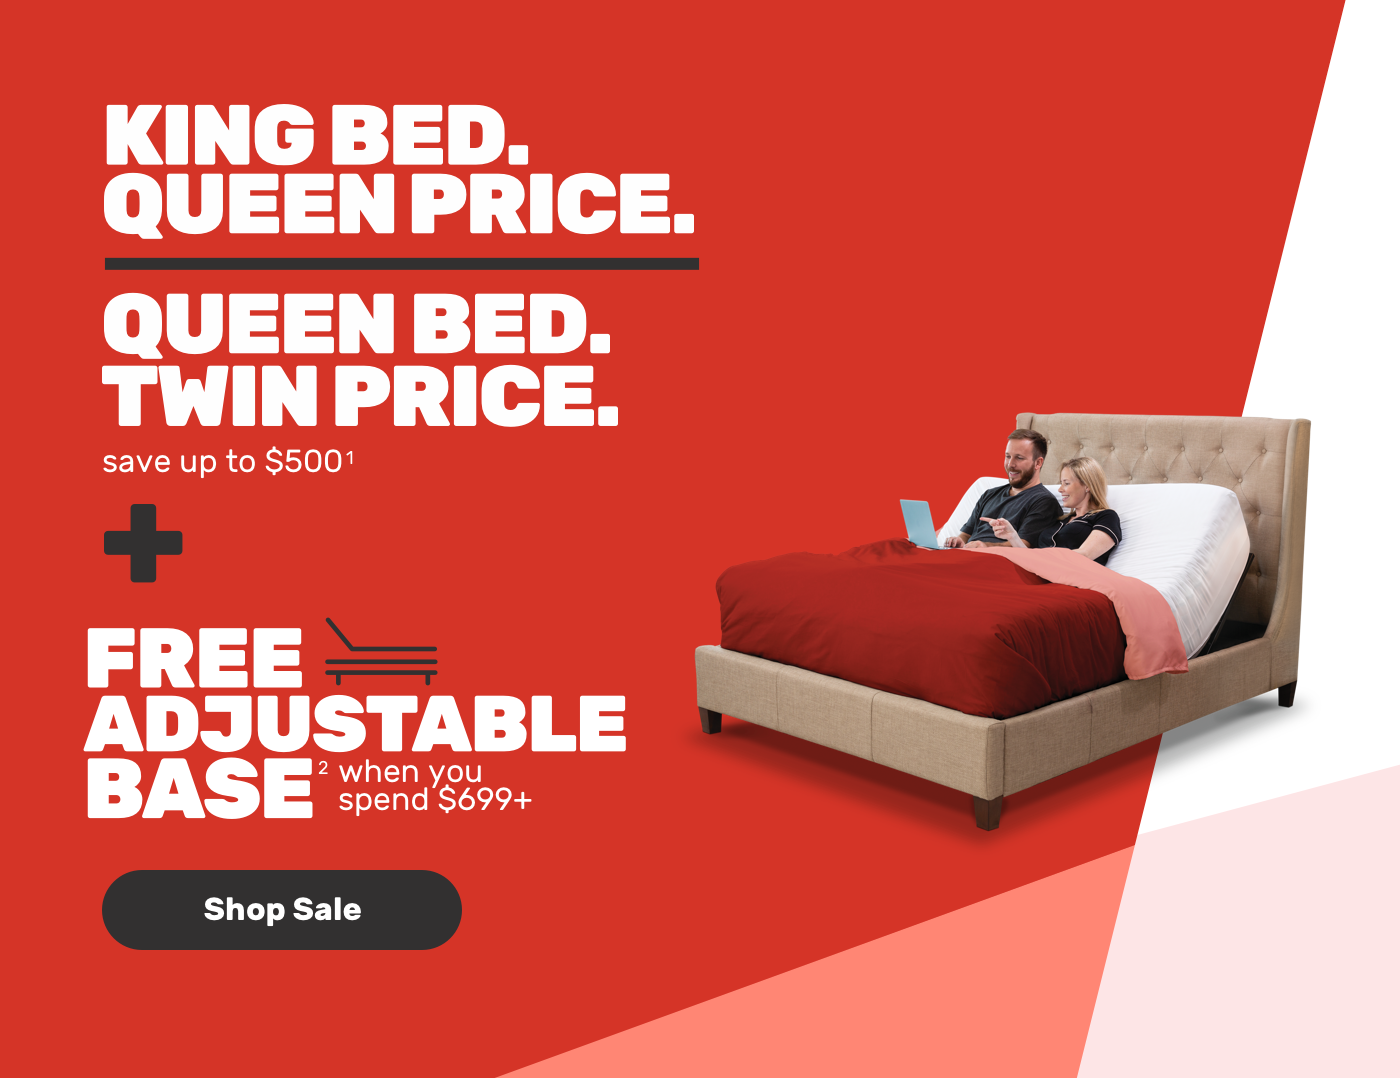 KING BED QUEEN PRICE QUEEN BED TWIN PRICE SAVE UPTO $500 + FREE ADJUSTABLE BASE Shop Now